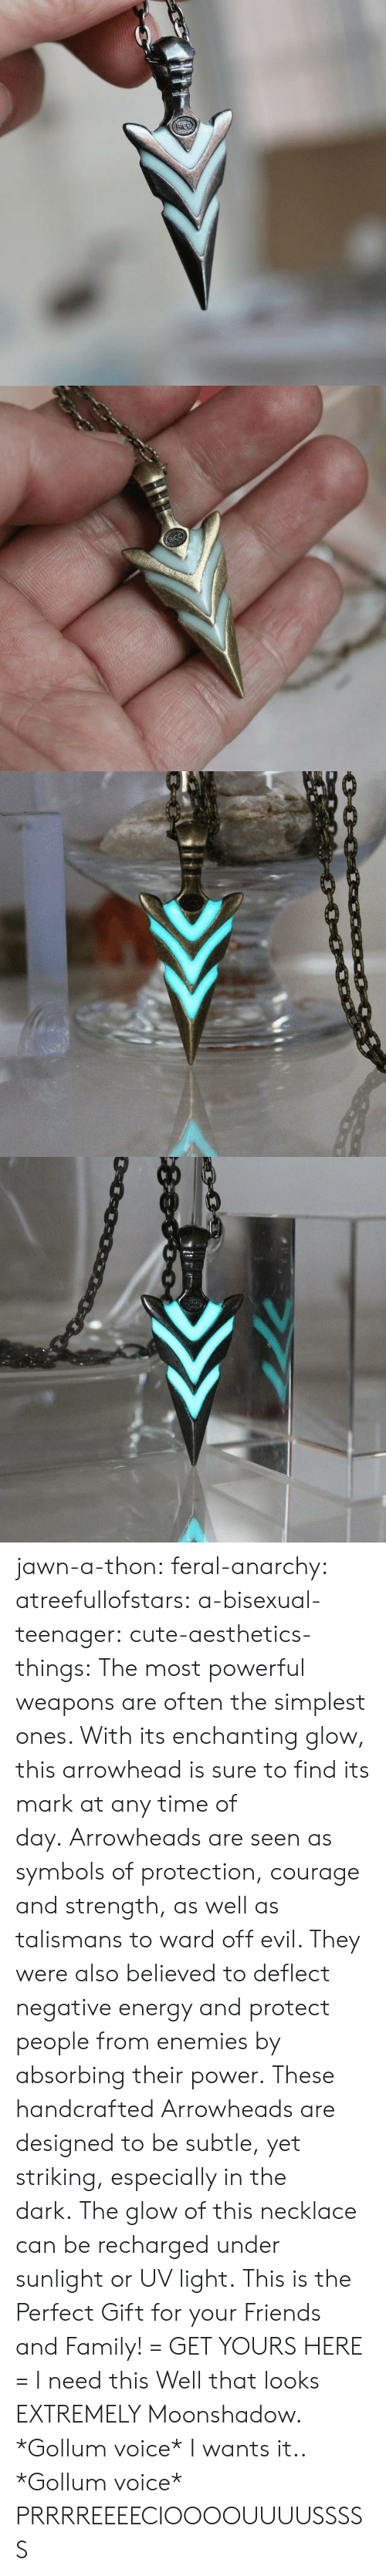 Cute, Energy, and Family: acc   0000c0 jawn-a-thon:  feral-anarchy:  atreefullofstars:   a-bisexual-teenager:  cute-aesthetics-things:  The most powerful weapons are often the simplest ones. With its enchanting glow, this arrowhead is sure to find its mark at any time of day. Arrowheads are seen as symbols of protection, courage and strength, as well as talismans to ward off evil. They were also believed to deflect negative energy and protect people from enemies by absorbing their power. These handcrafted Arrowheads are designed to be subtle, yet striking, especially in the dark. The glow of this necklace can be recharged under sunlight or UV light. This is the Perfect Gift for your Friends and Family! = GET YOURS HERE =   I need this  Well that looks EXTREMELY Moonshadow.   *Gollum voice* I wants it..  *Gollum voice* PRRRREEEECIOOOOUUUUSSSSS